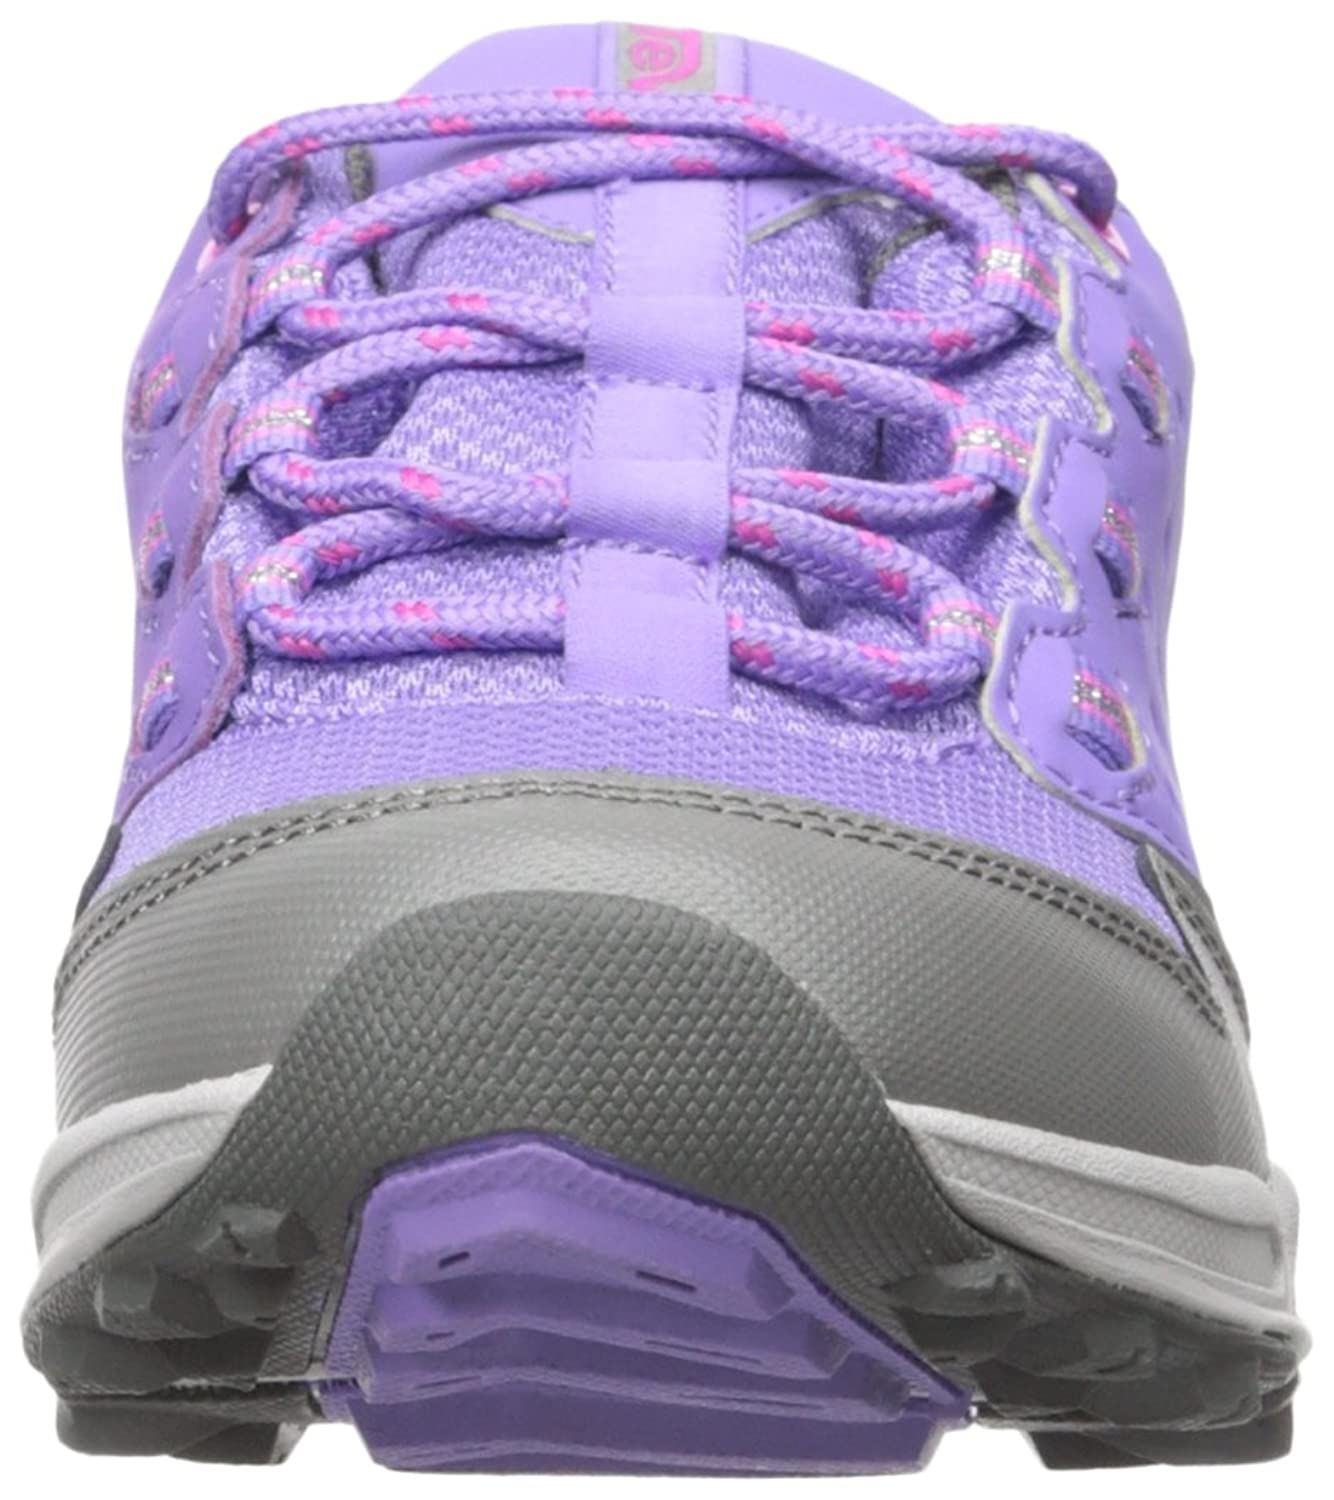 f5f5a26e0eafe Teva Girls  Wit Low Rise Hiking Shoes  Amazon.co.uk  Shoes   Bags